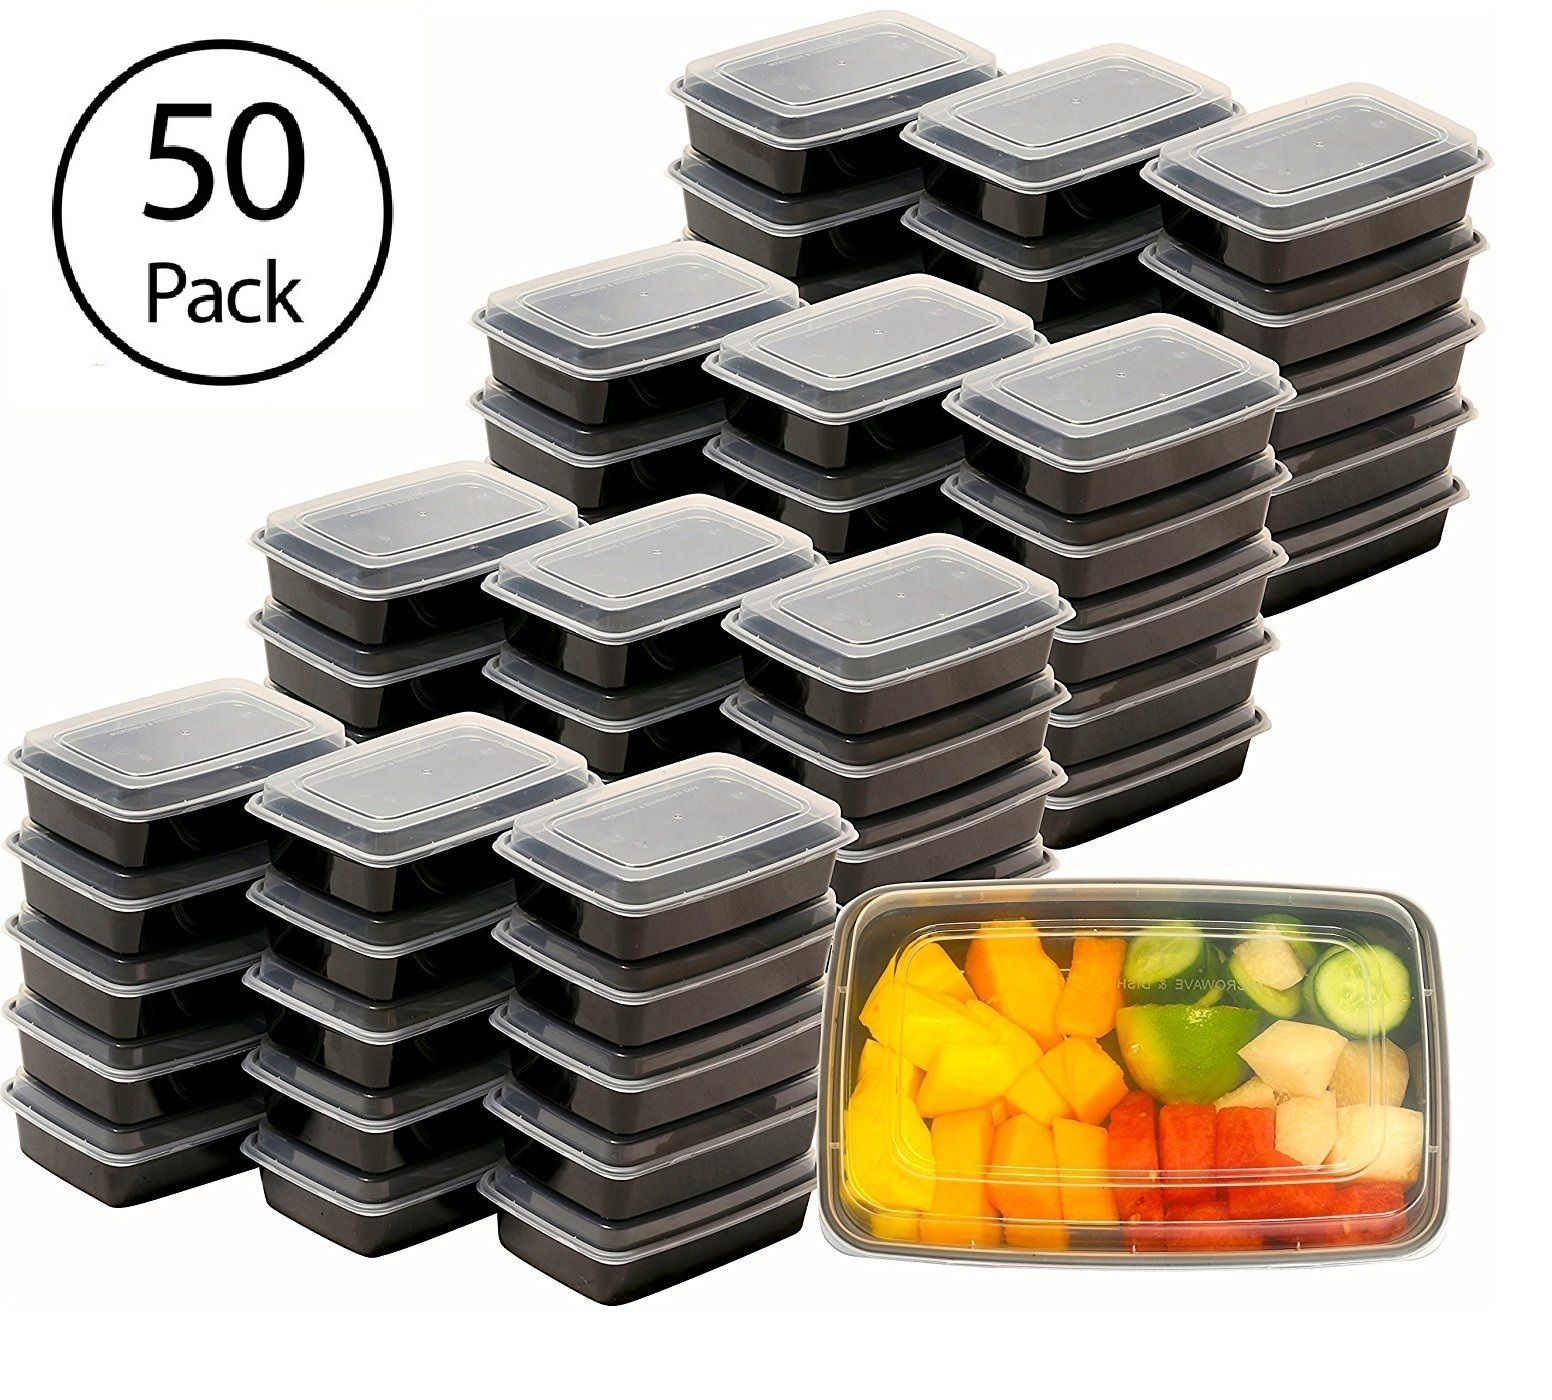 50 Meal Prep Containers Plastic Food Storage Reusable Microwavable 1 Compartment 1